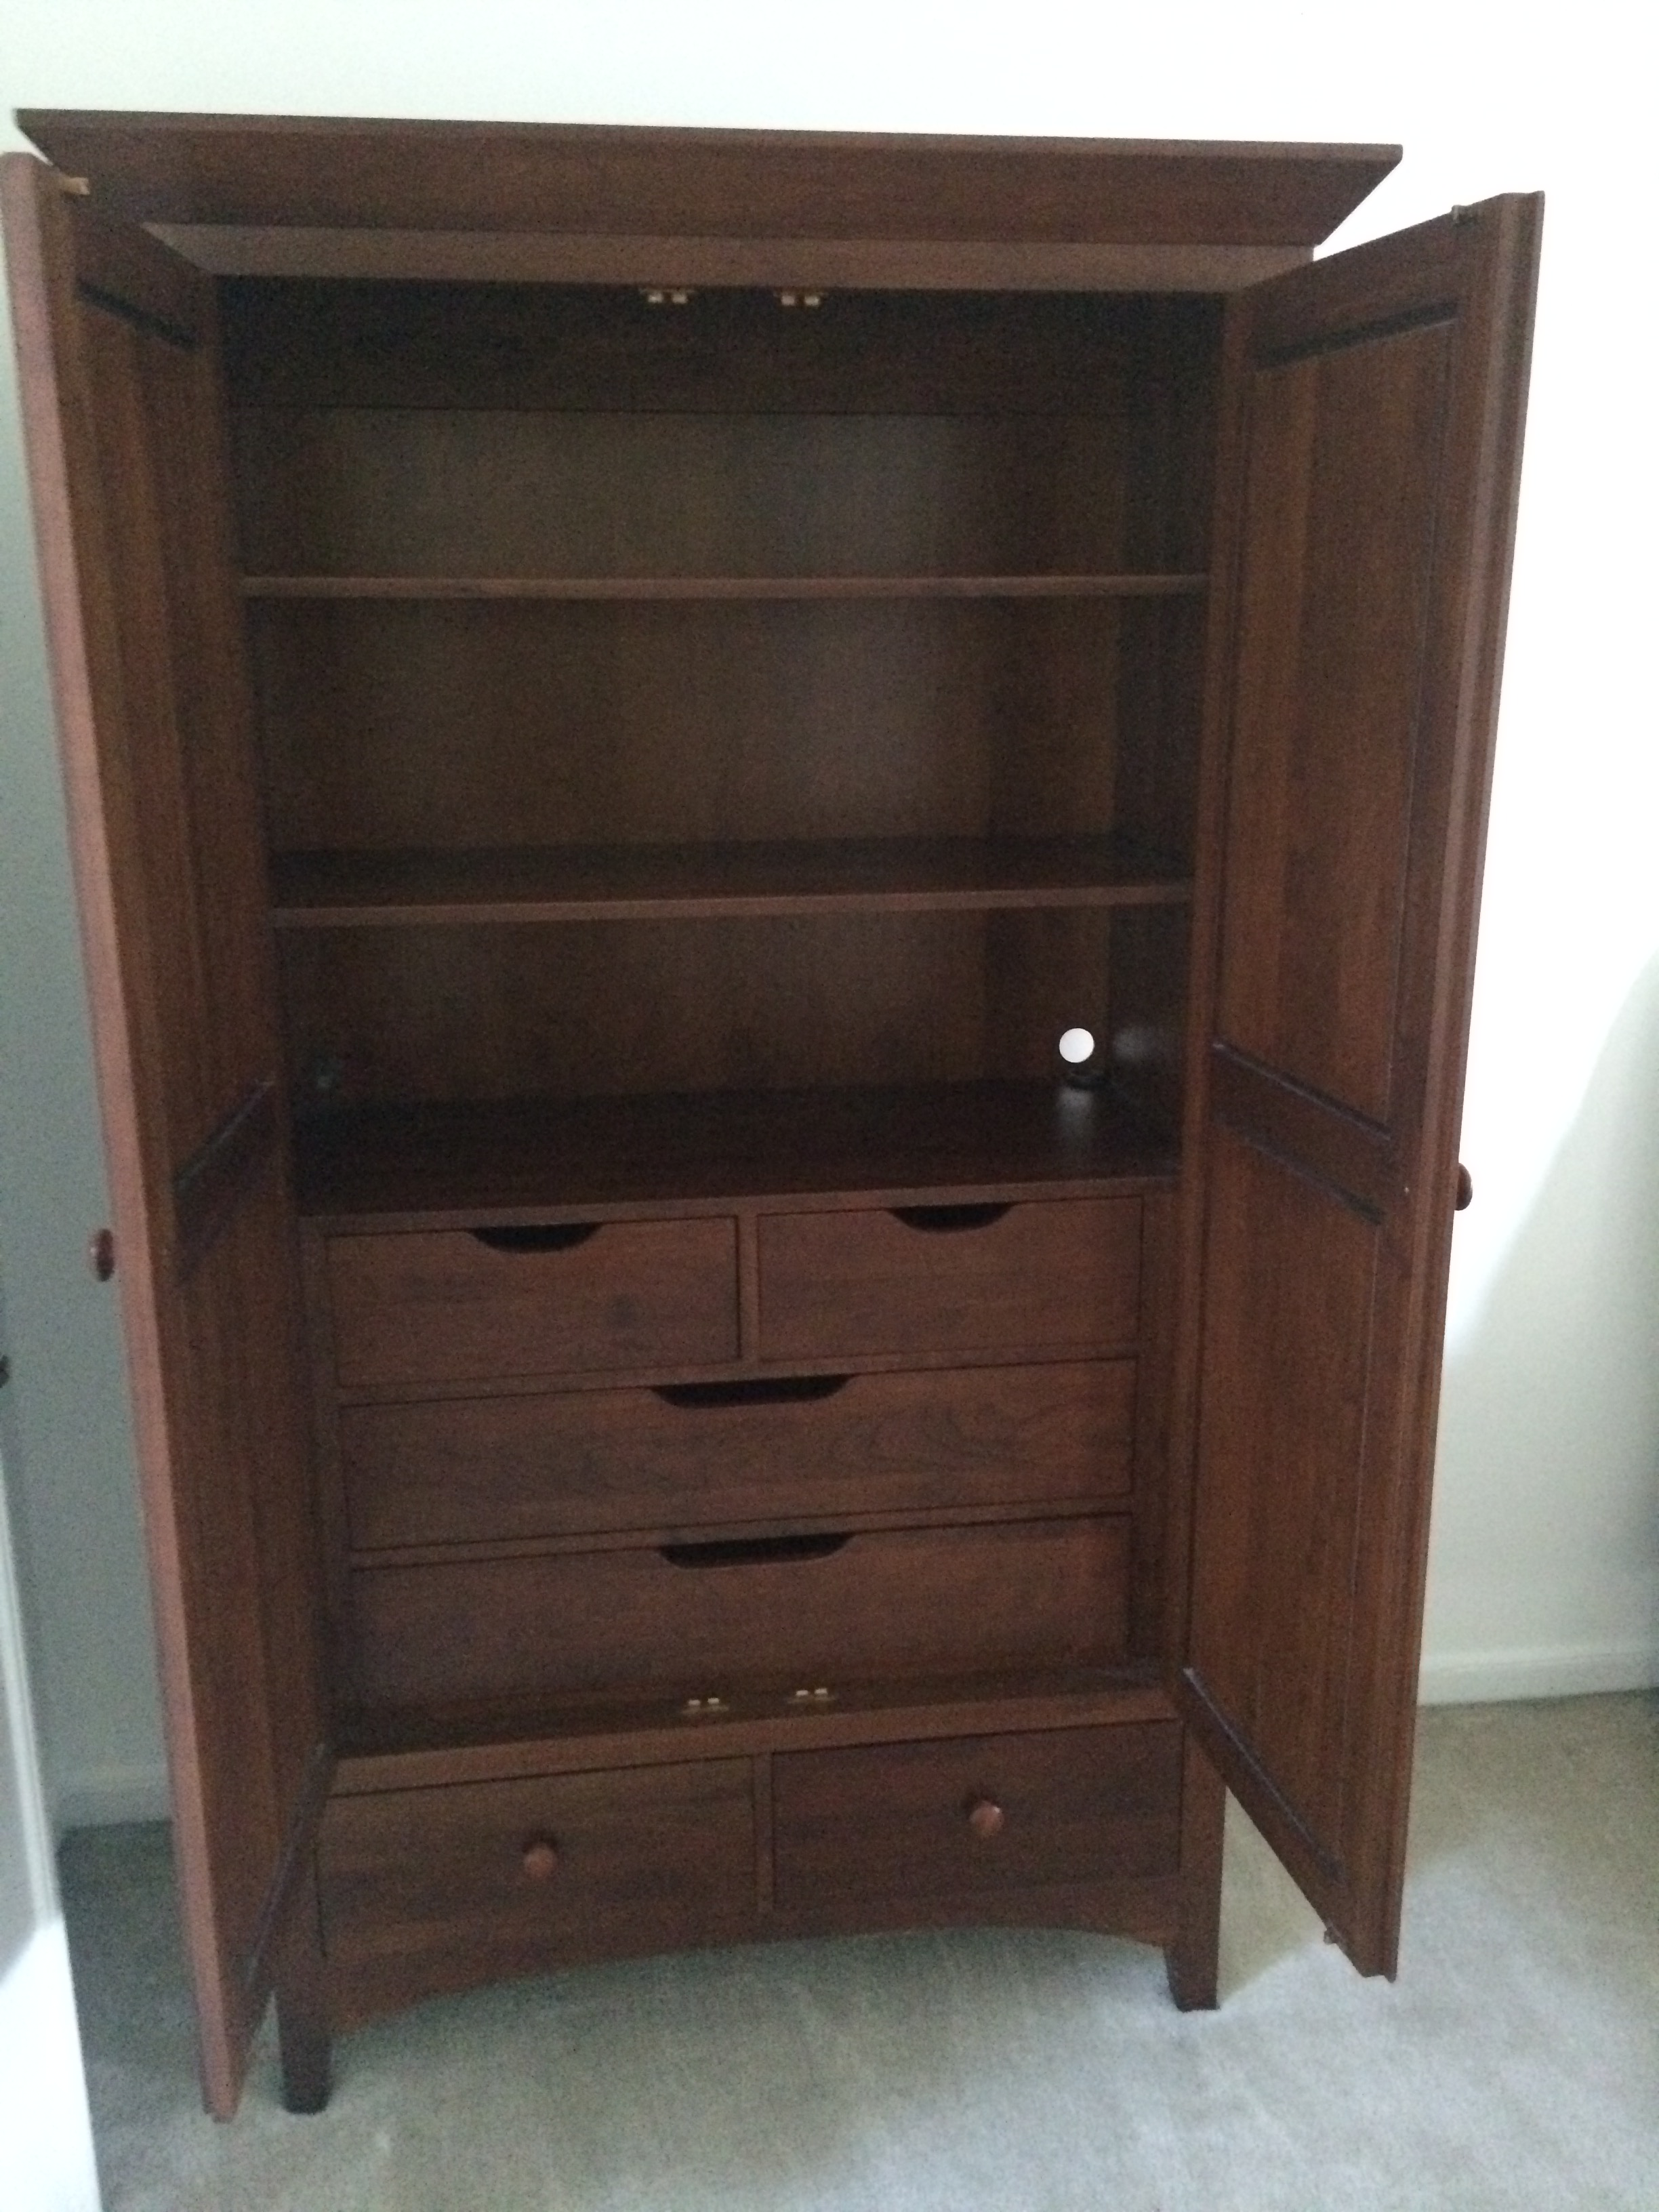 Delicieux Ethan Allen American Impressions Solid Cherry Armoire   Image 4 Of 4